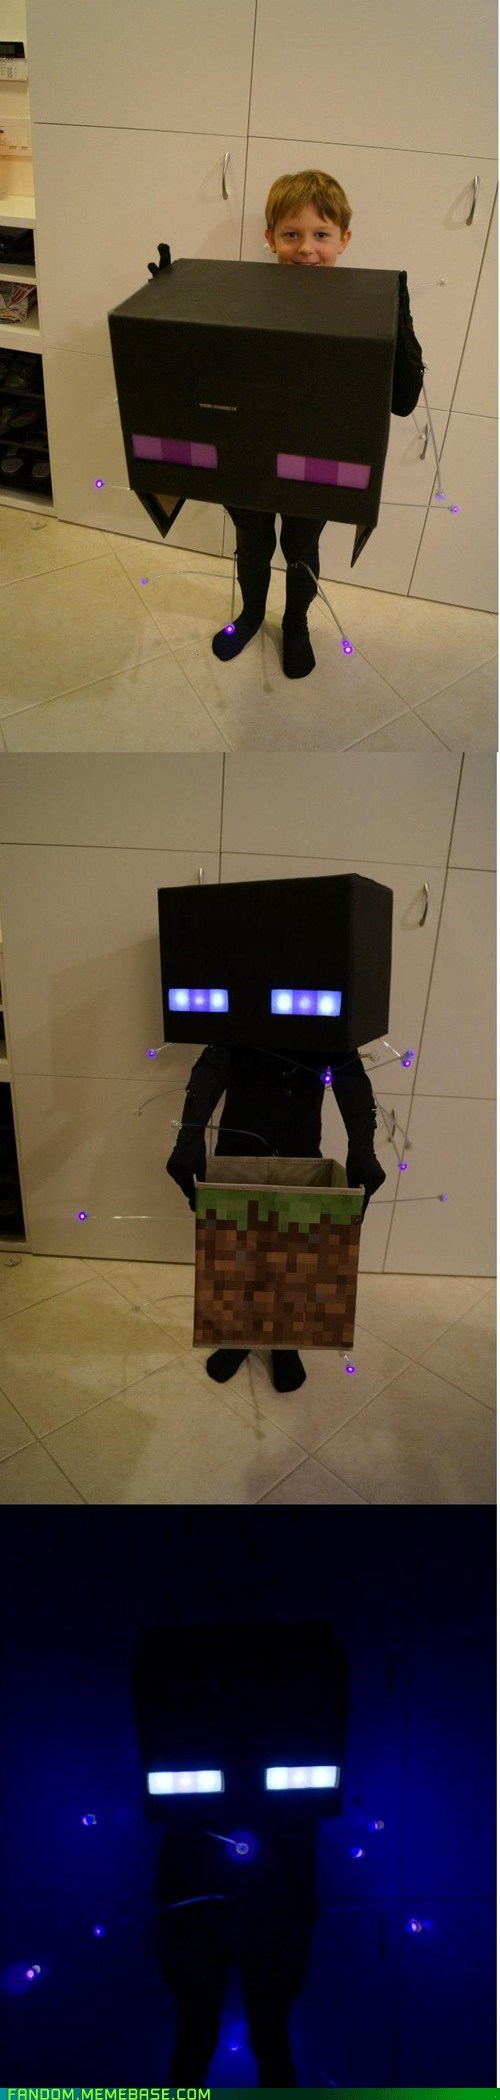 enderman cosplay kids cute minecraft video games - 6971160832